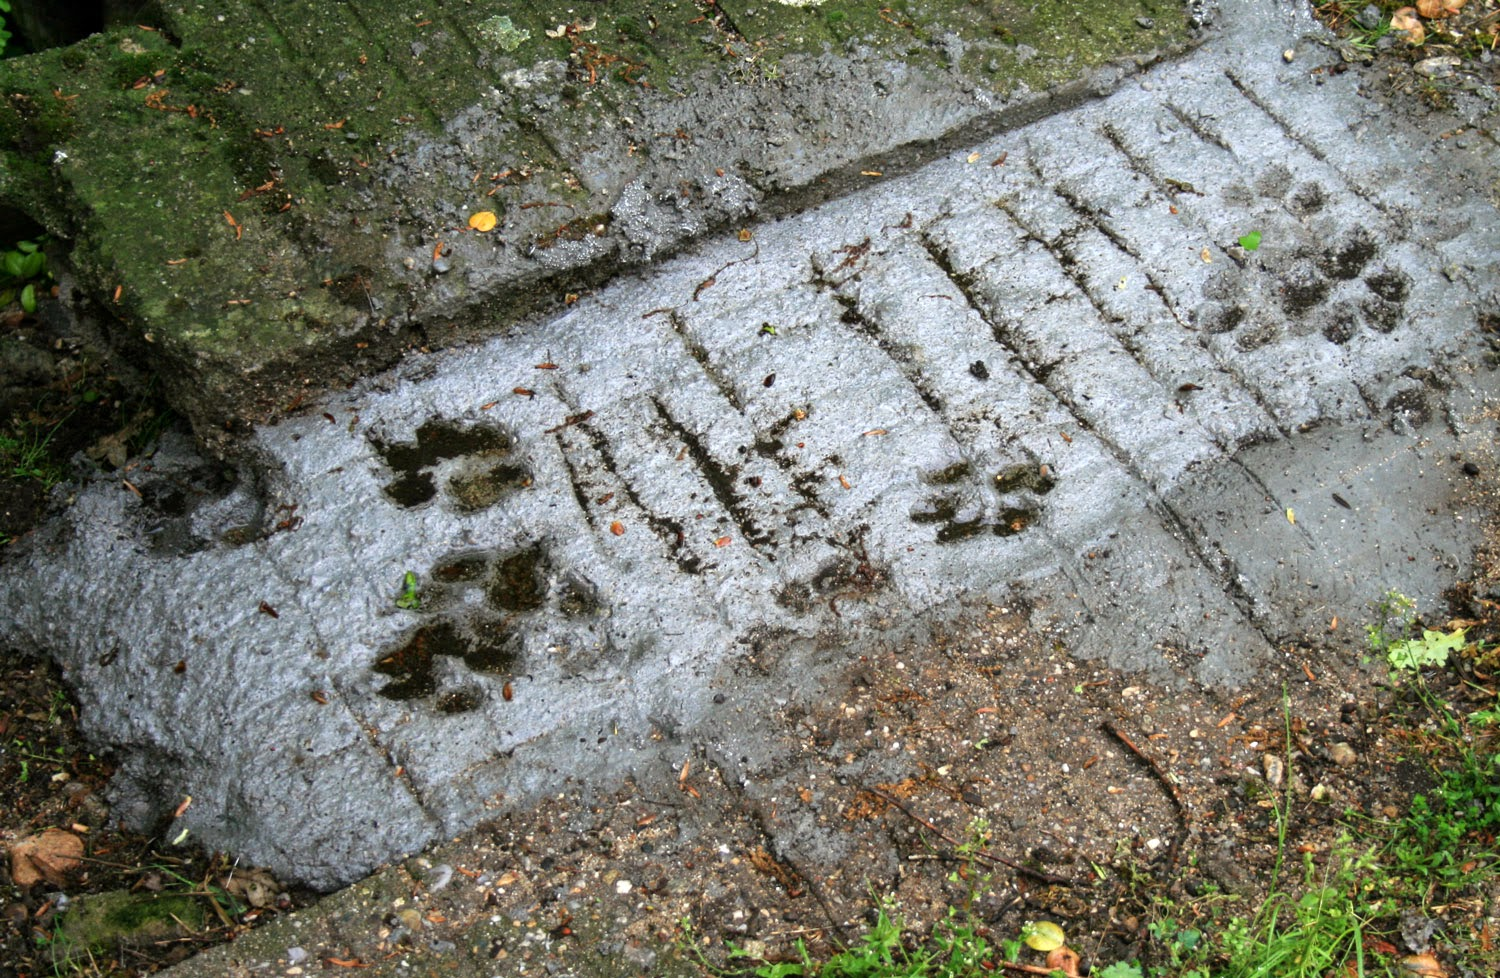 Rambo's footprints in the concrete